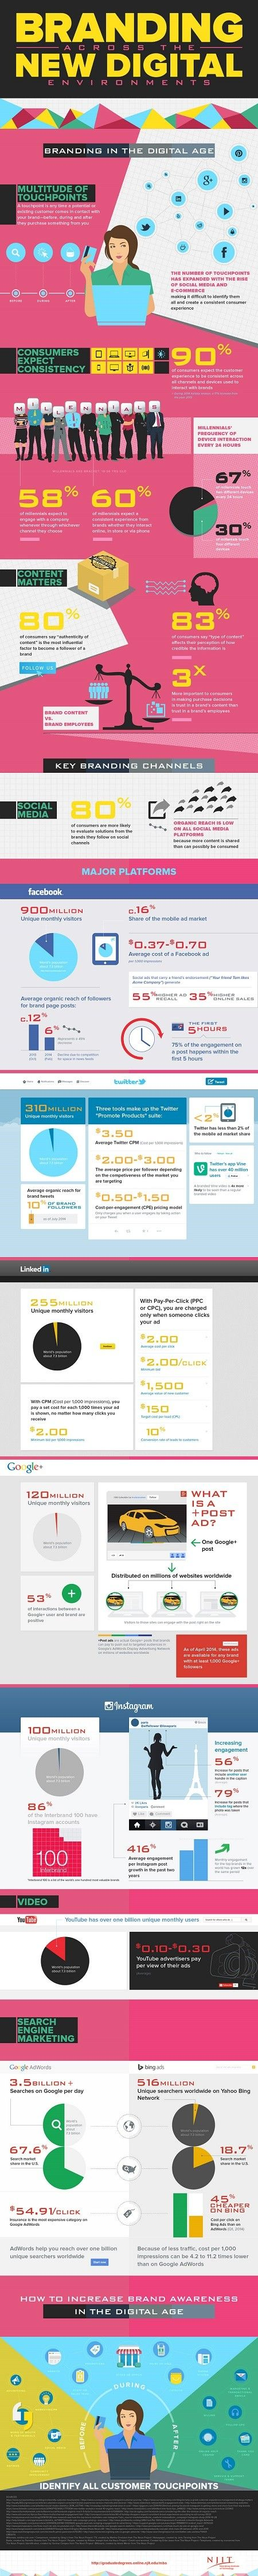 How to Brand Across Multiple Touchpoints [Infographic]